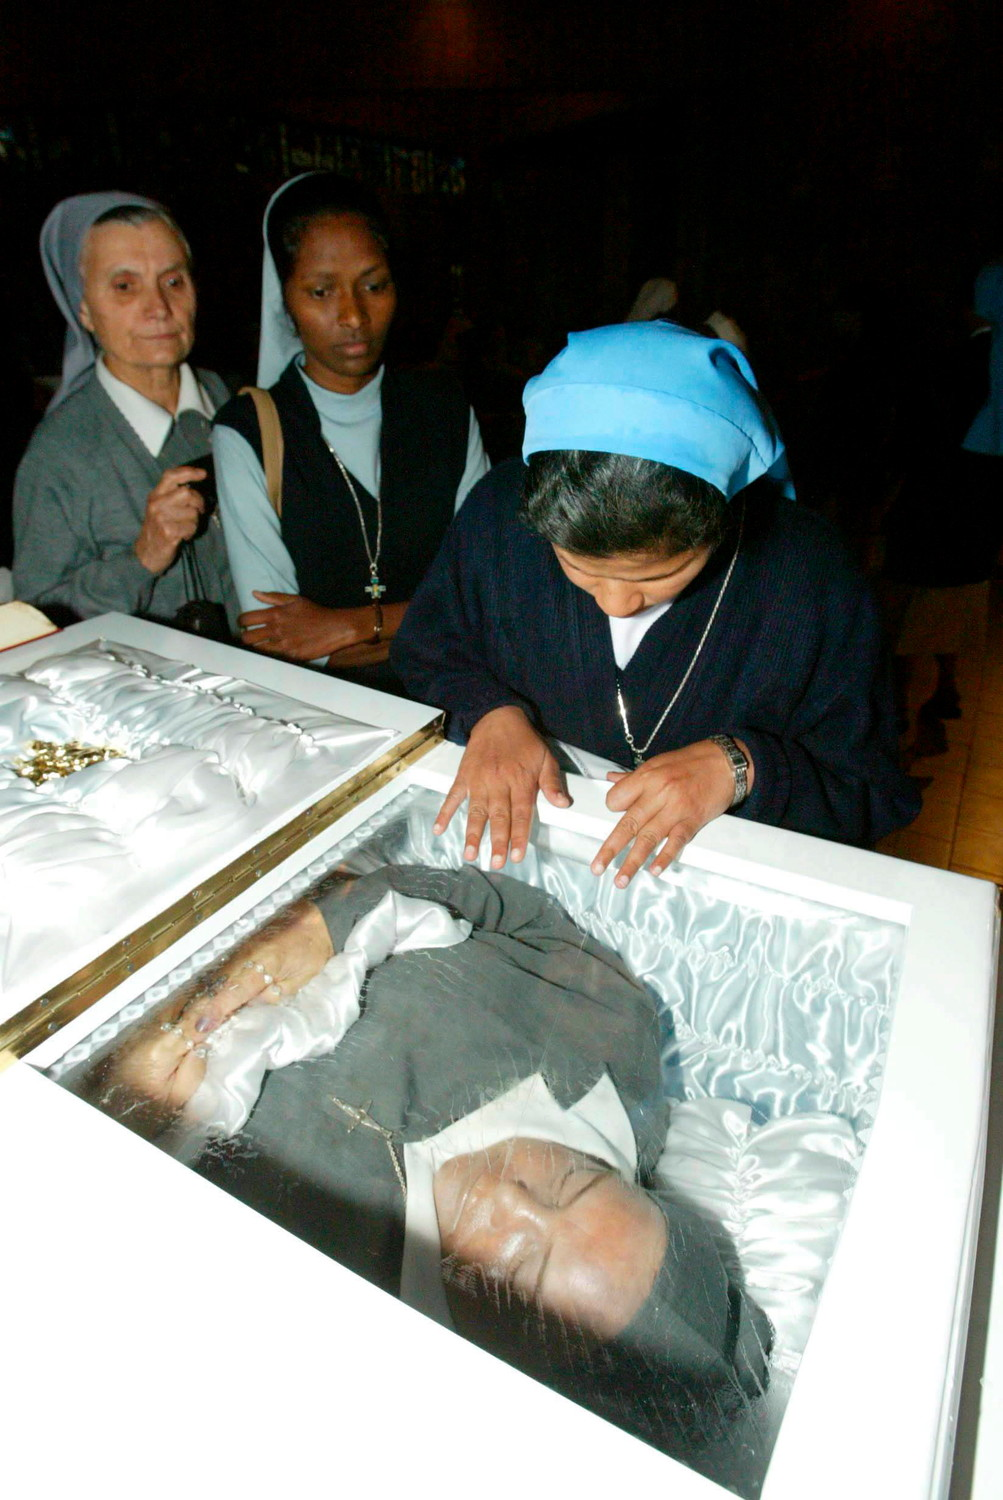 A woman religious prays over the body of Consolata Sister Leonella Sgorbati during her 2006 Funeral Mass in Nairobi, Kenya. Sister Sgorbati and her bodyguard were gunned down as they left the children's hospital where she worked in Mogadishu, Somalia. She will be beatified in Piacenza, Italy, May 26.